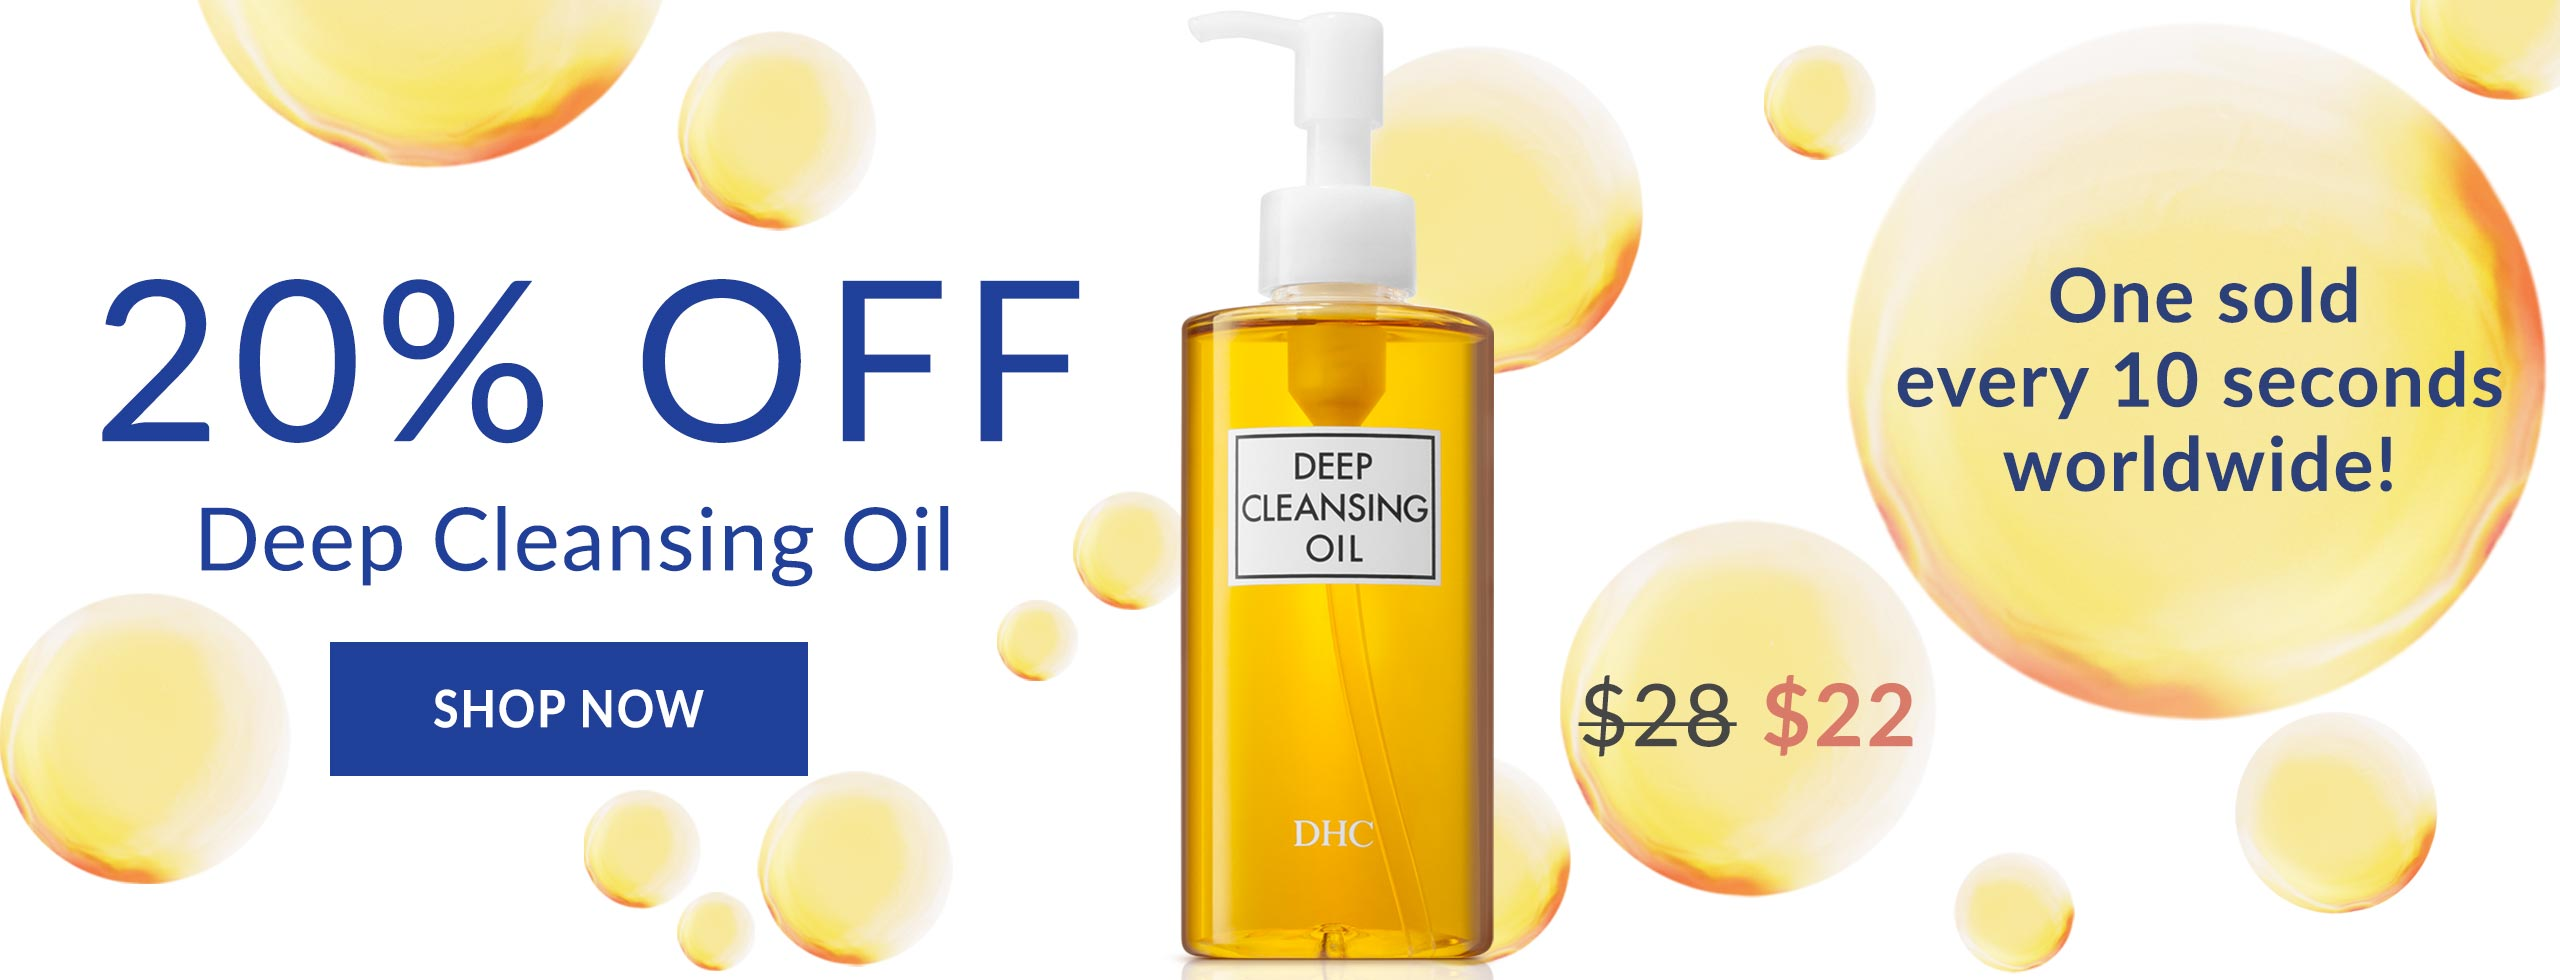 20% Off Deep Cleansing Oil. One sold every 10 seconds worldwide! On sale for $22. Shop Now!